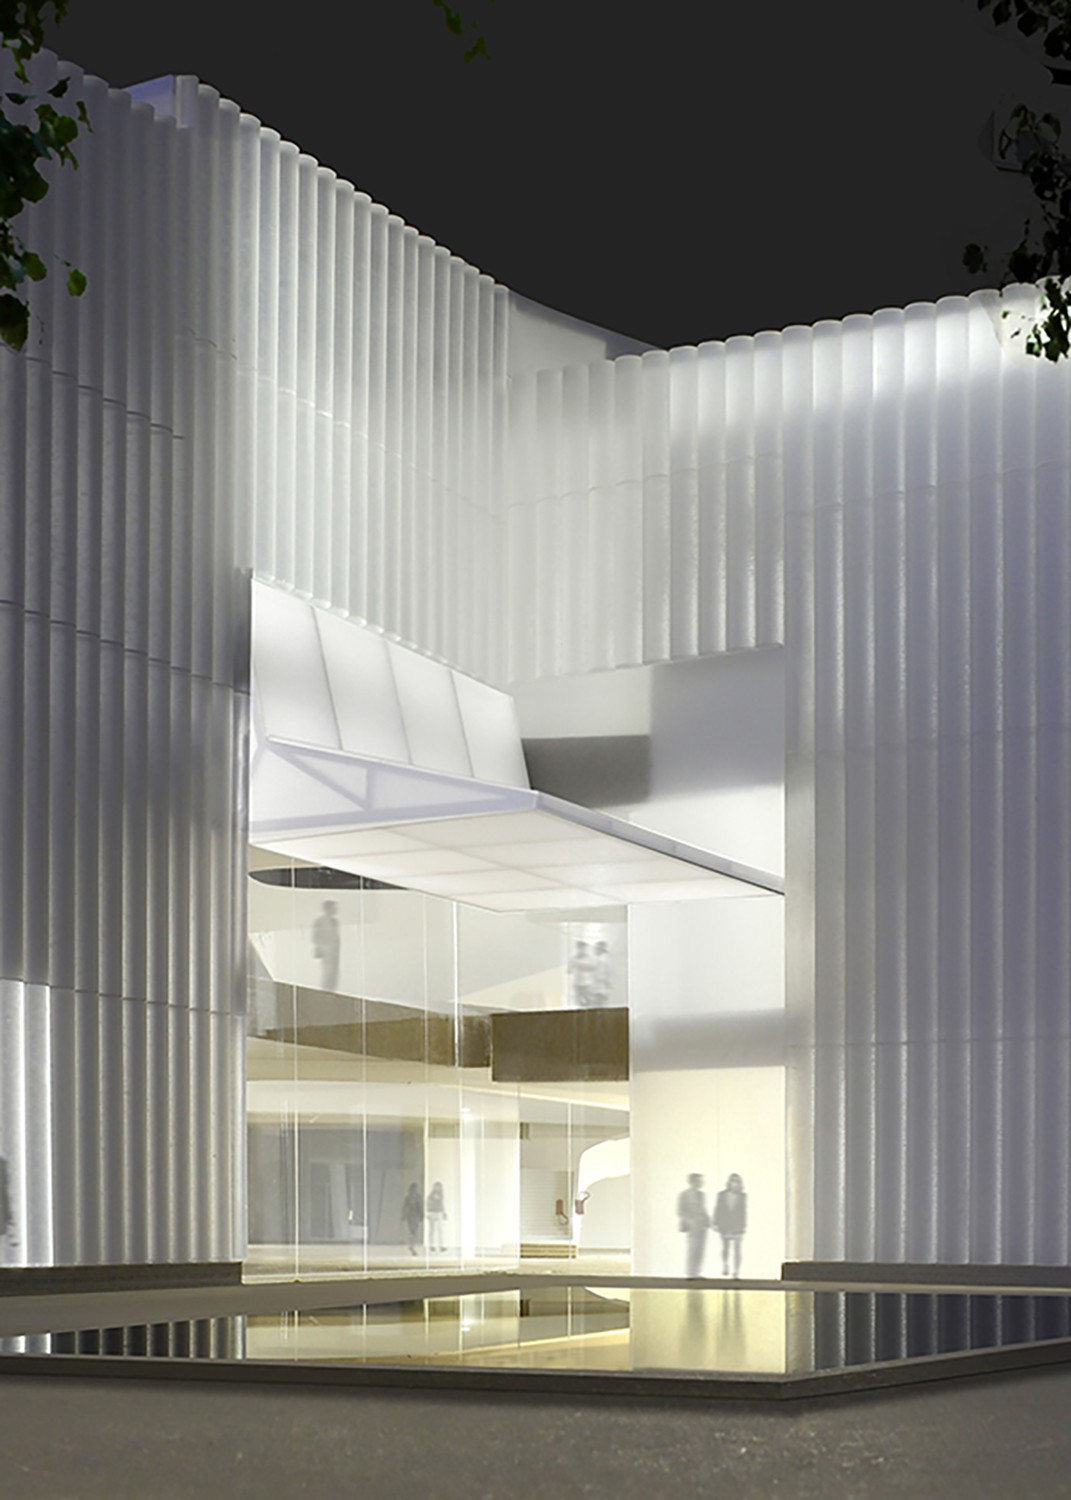 https://s3.us-east-2.amazonaws.com/steven-holl/uploads/projects/project-images/StevenHollArchitects_MFAH_SHA_13_main-entrance-night-view_WV.jpg